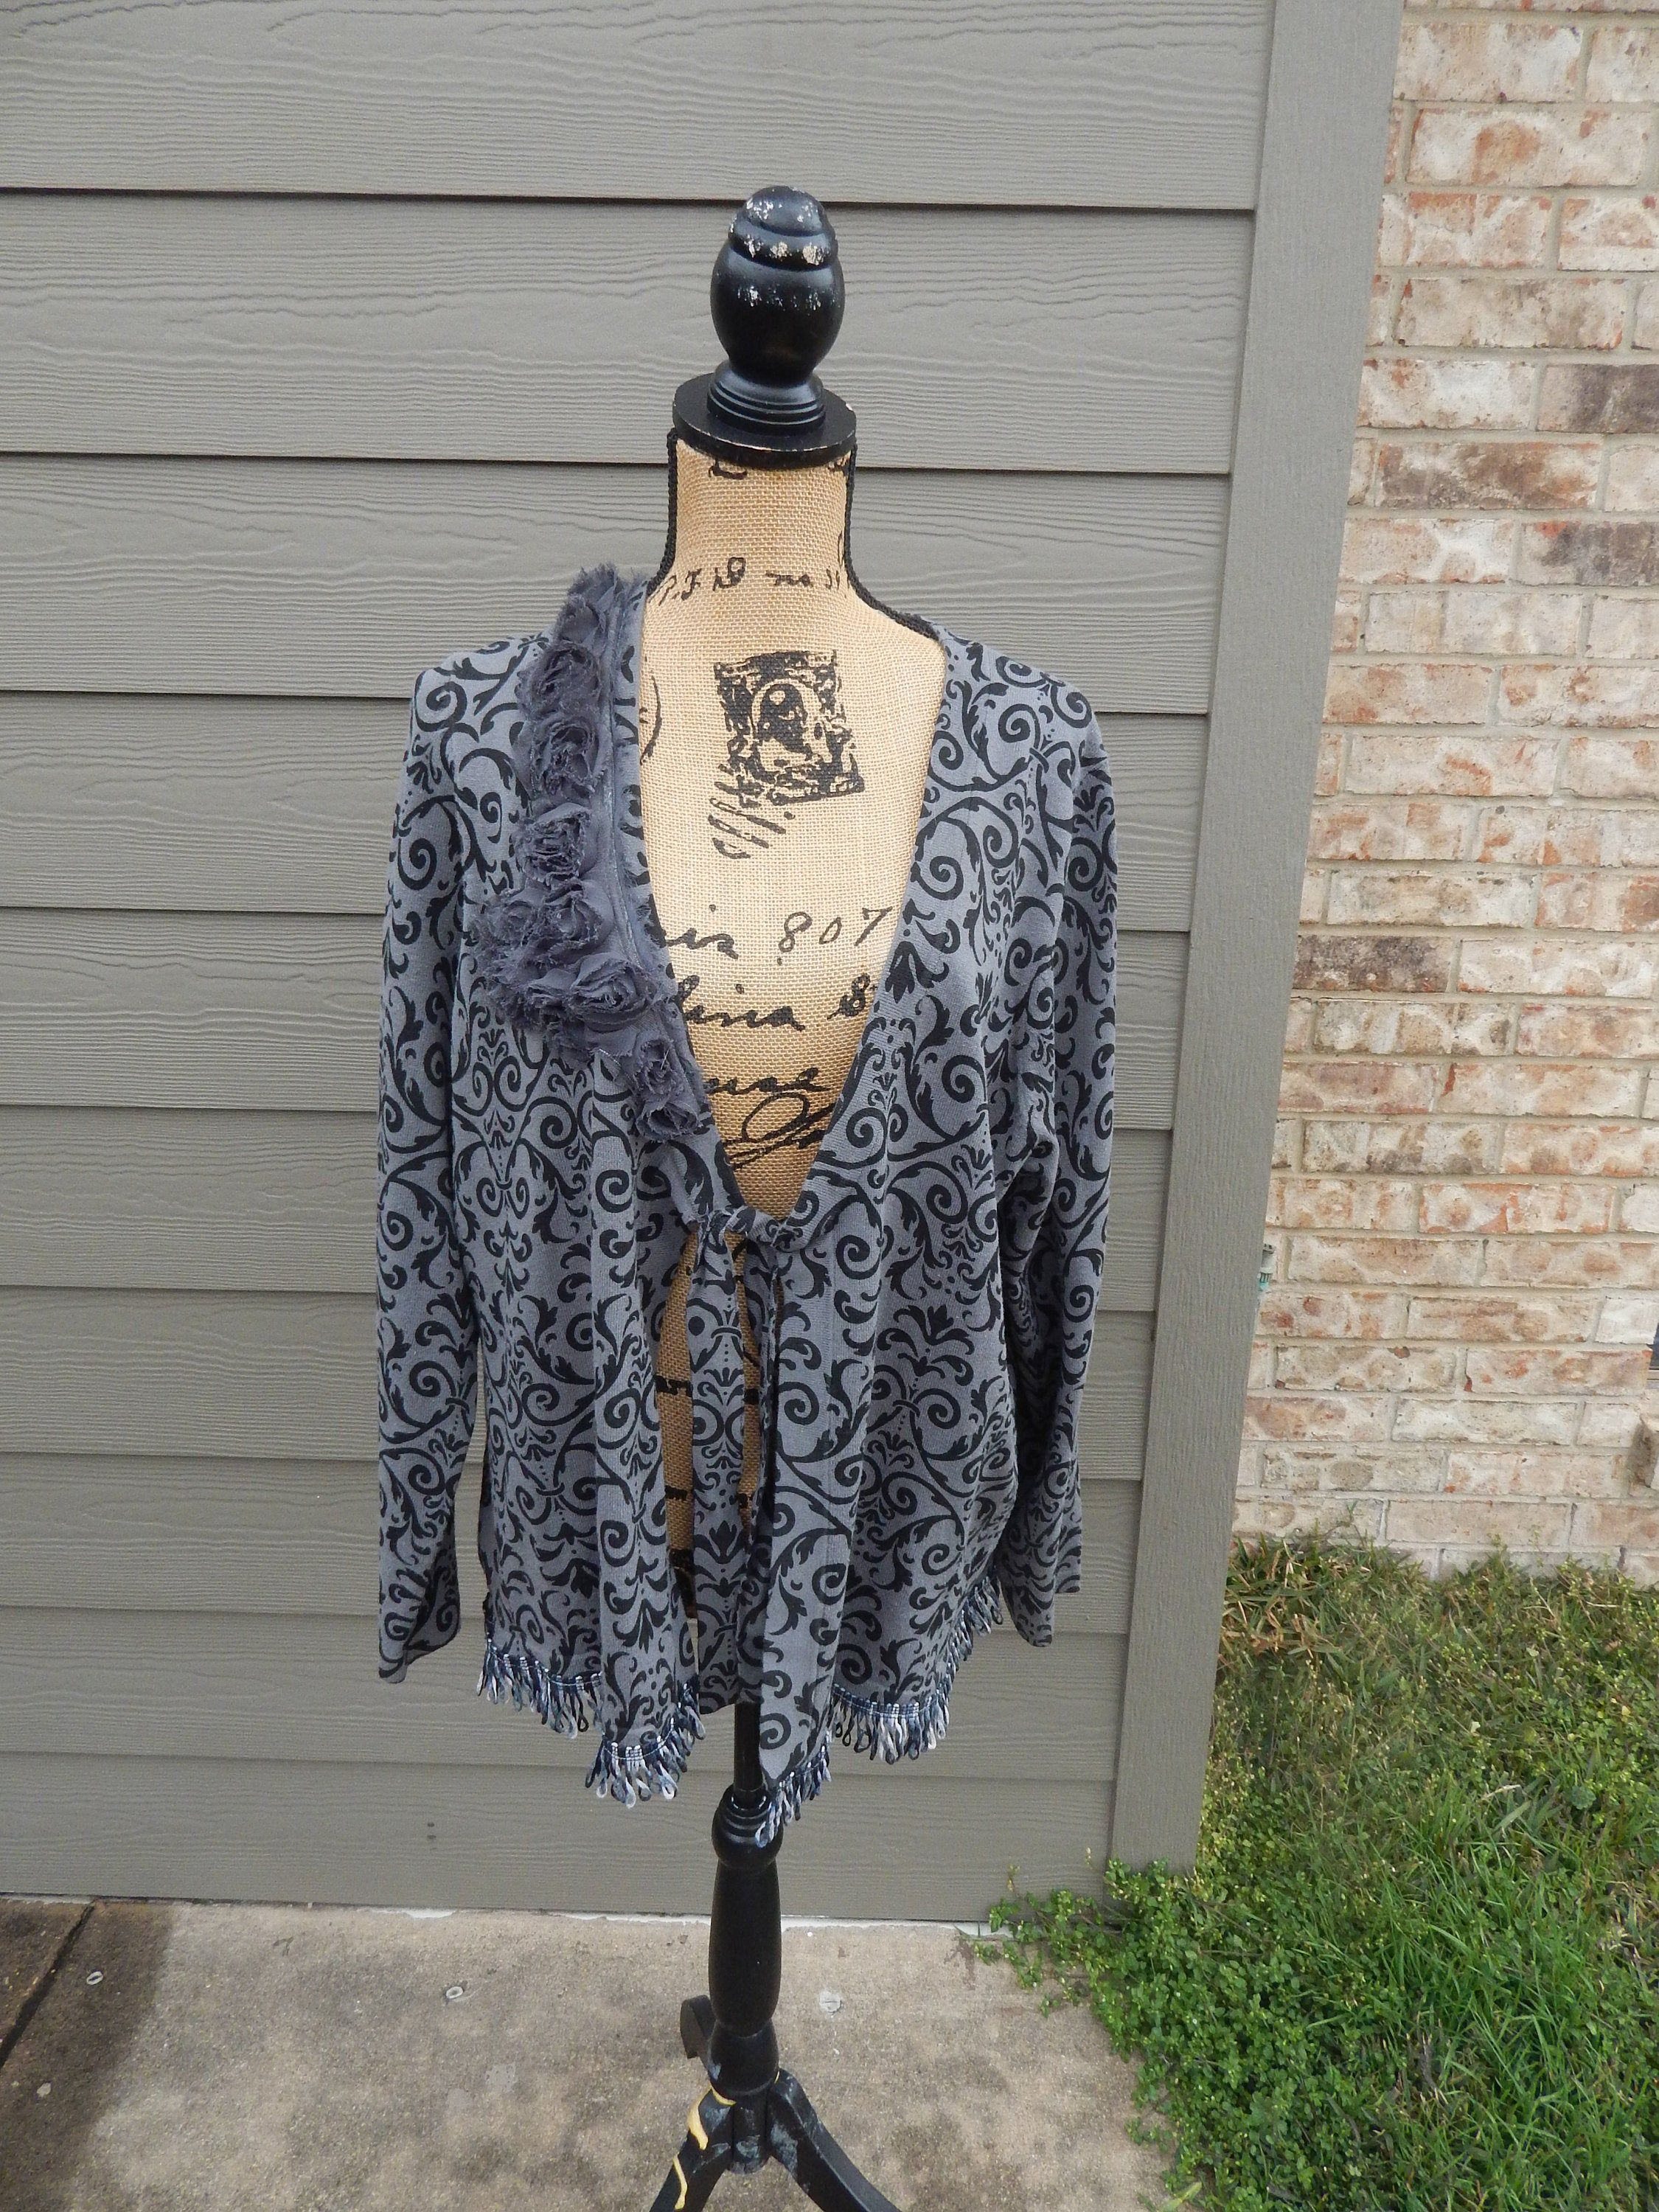 Bohemian Sweater Flowered and Gray Fringe and Trim Altered Women/'s Gray Cardigan Sweater Altered Couture-Medium Romantic Feminine